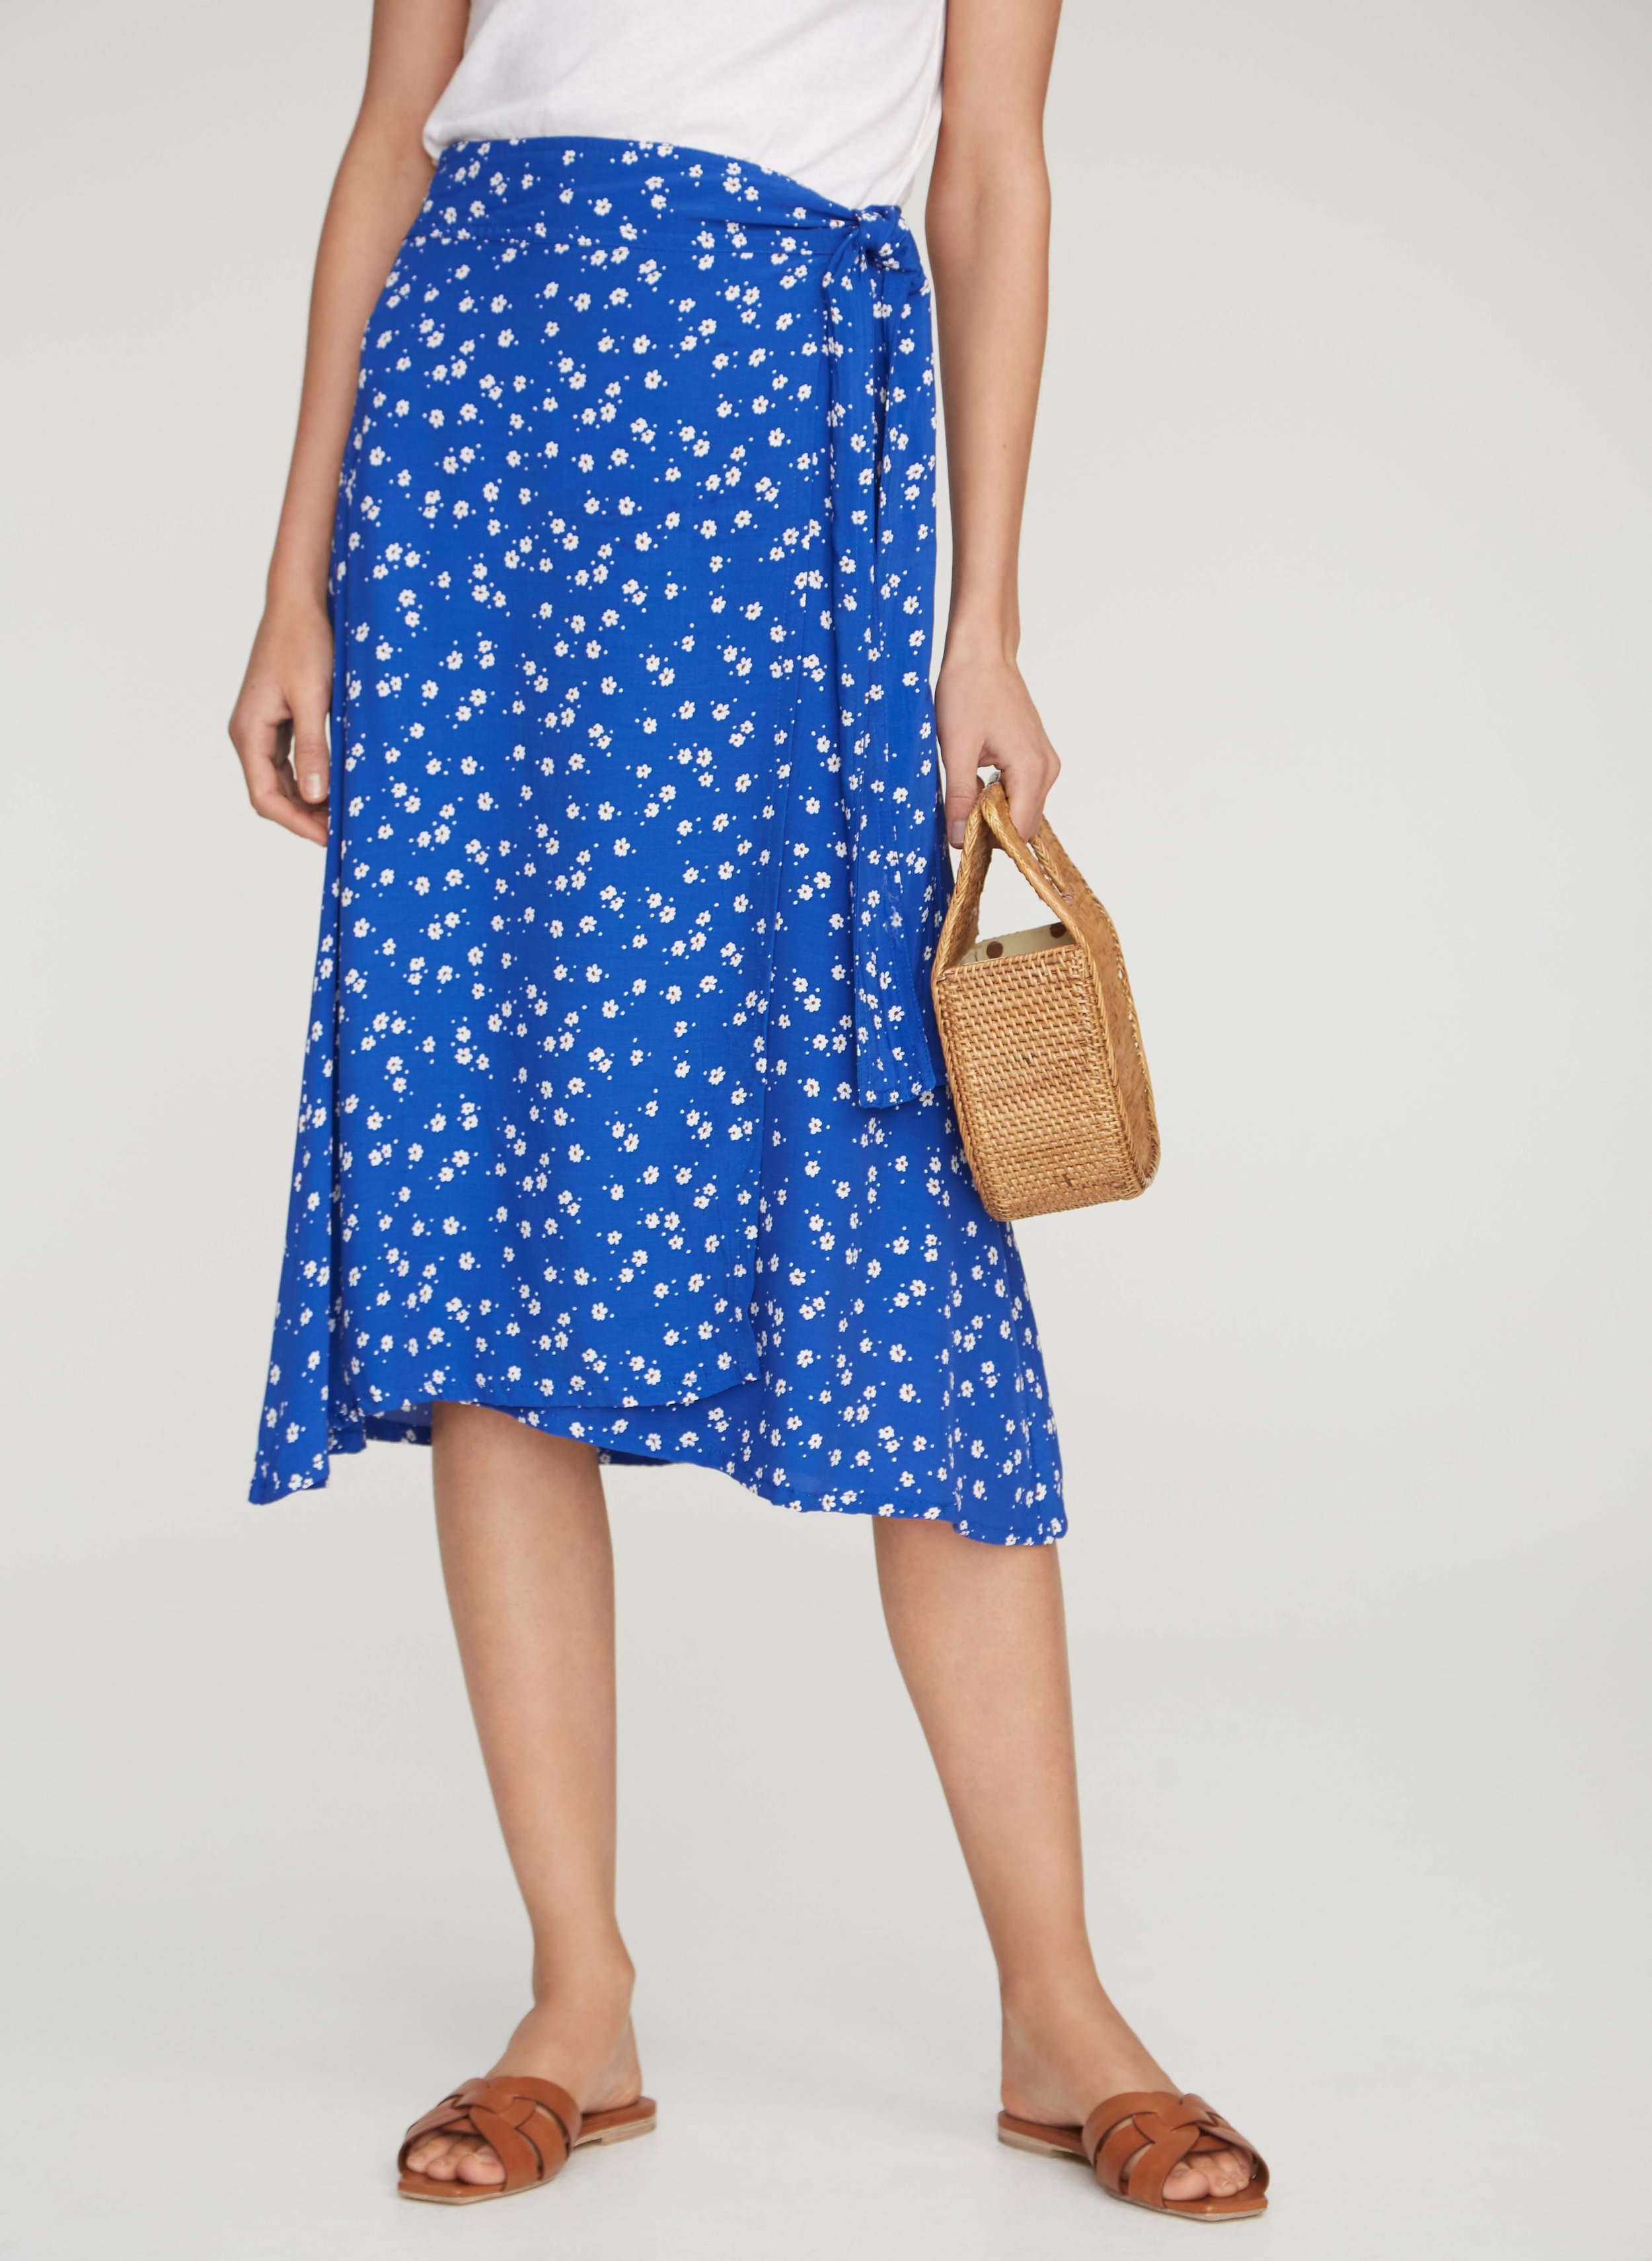 Faithfull the Brand - Valencia Wrap Skirt / $149.00This is the perfect piece to wear all summer long. The wrap allows for coverage while staying breezy.